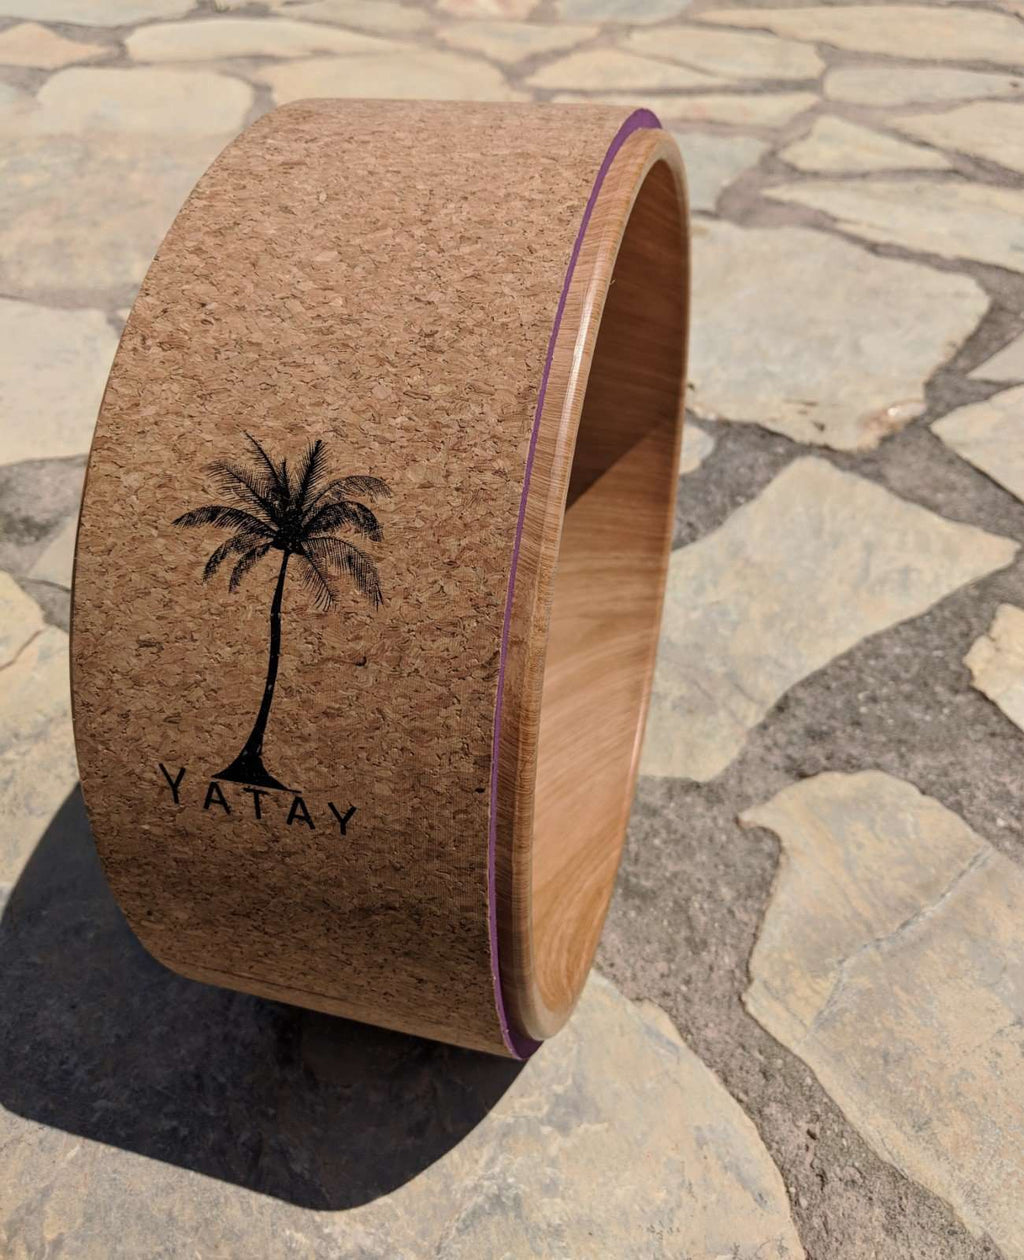 Cork Yoga Wheel | Made with 100% Natural Materials | Yatay